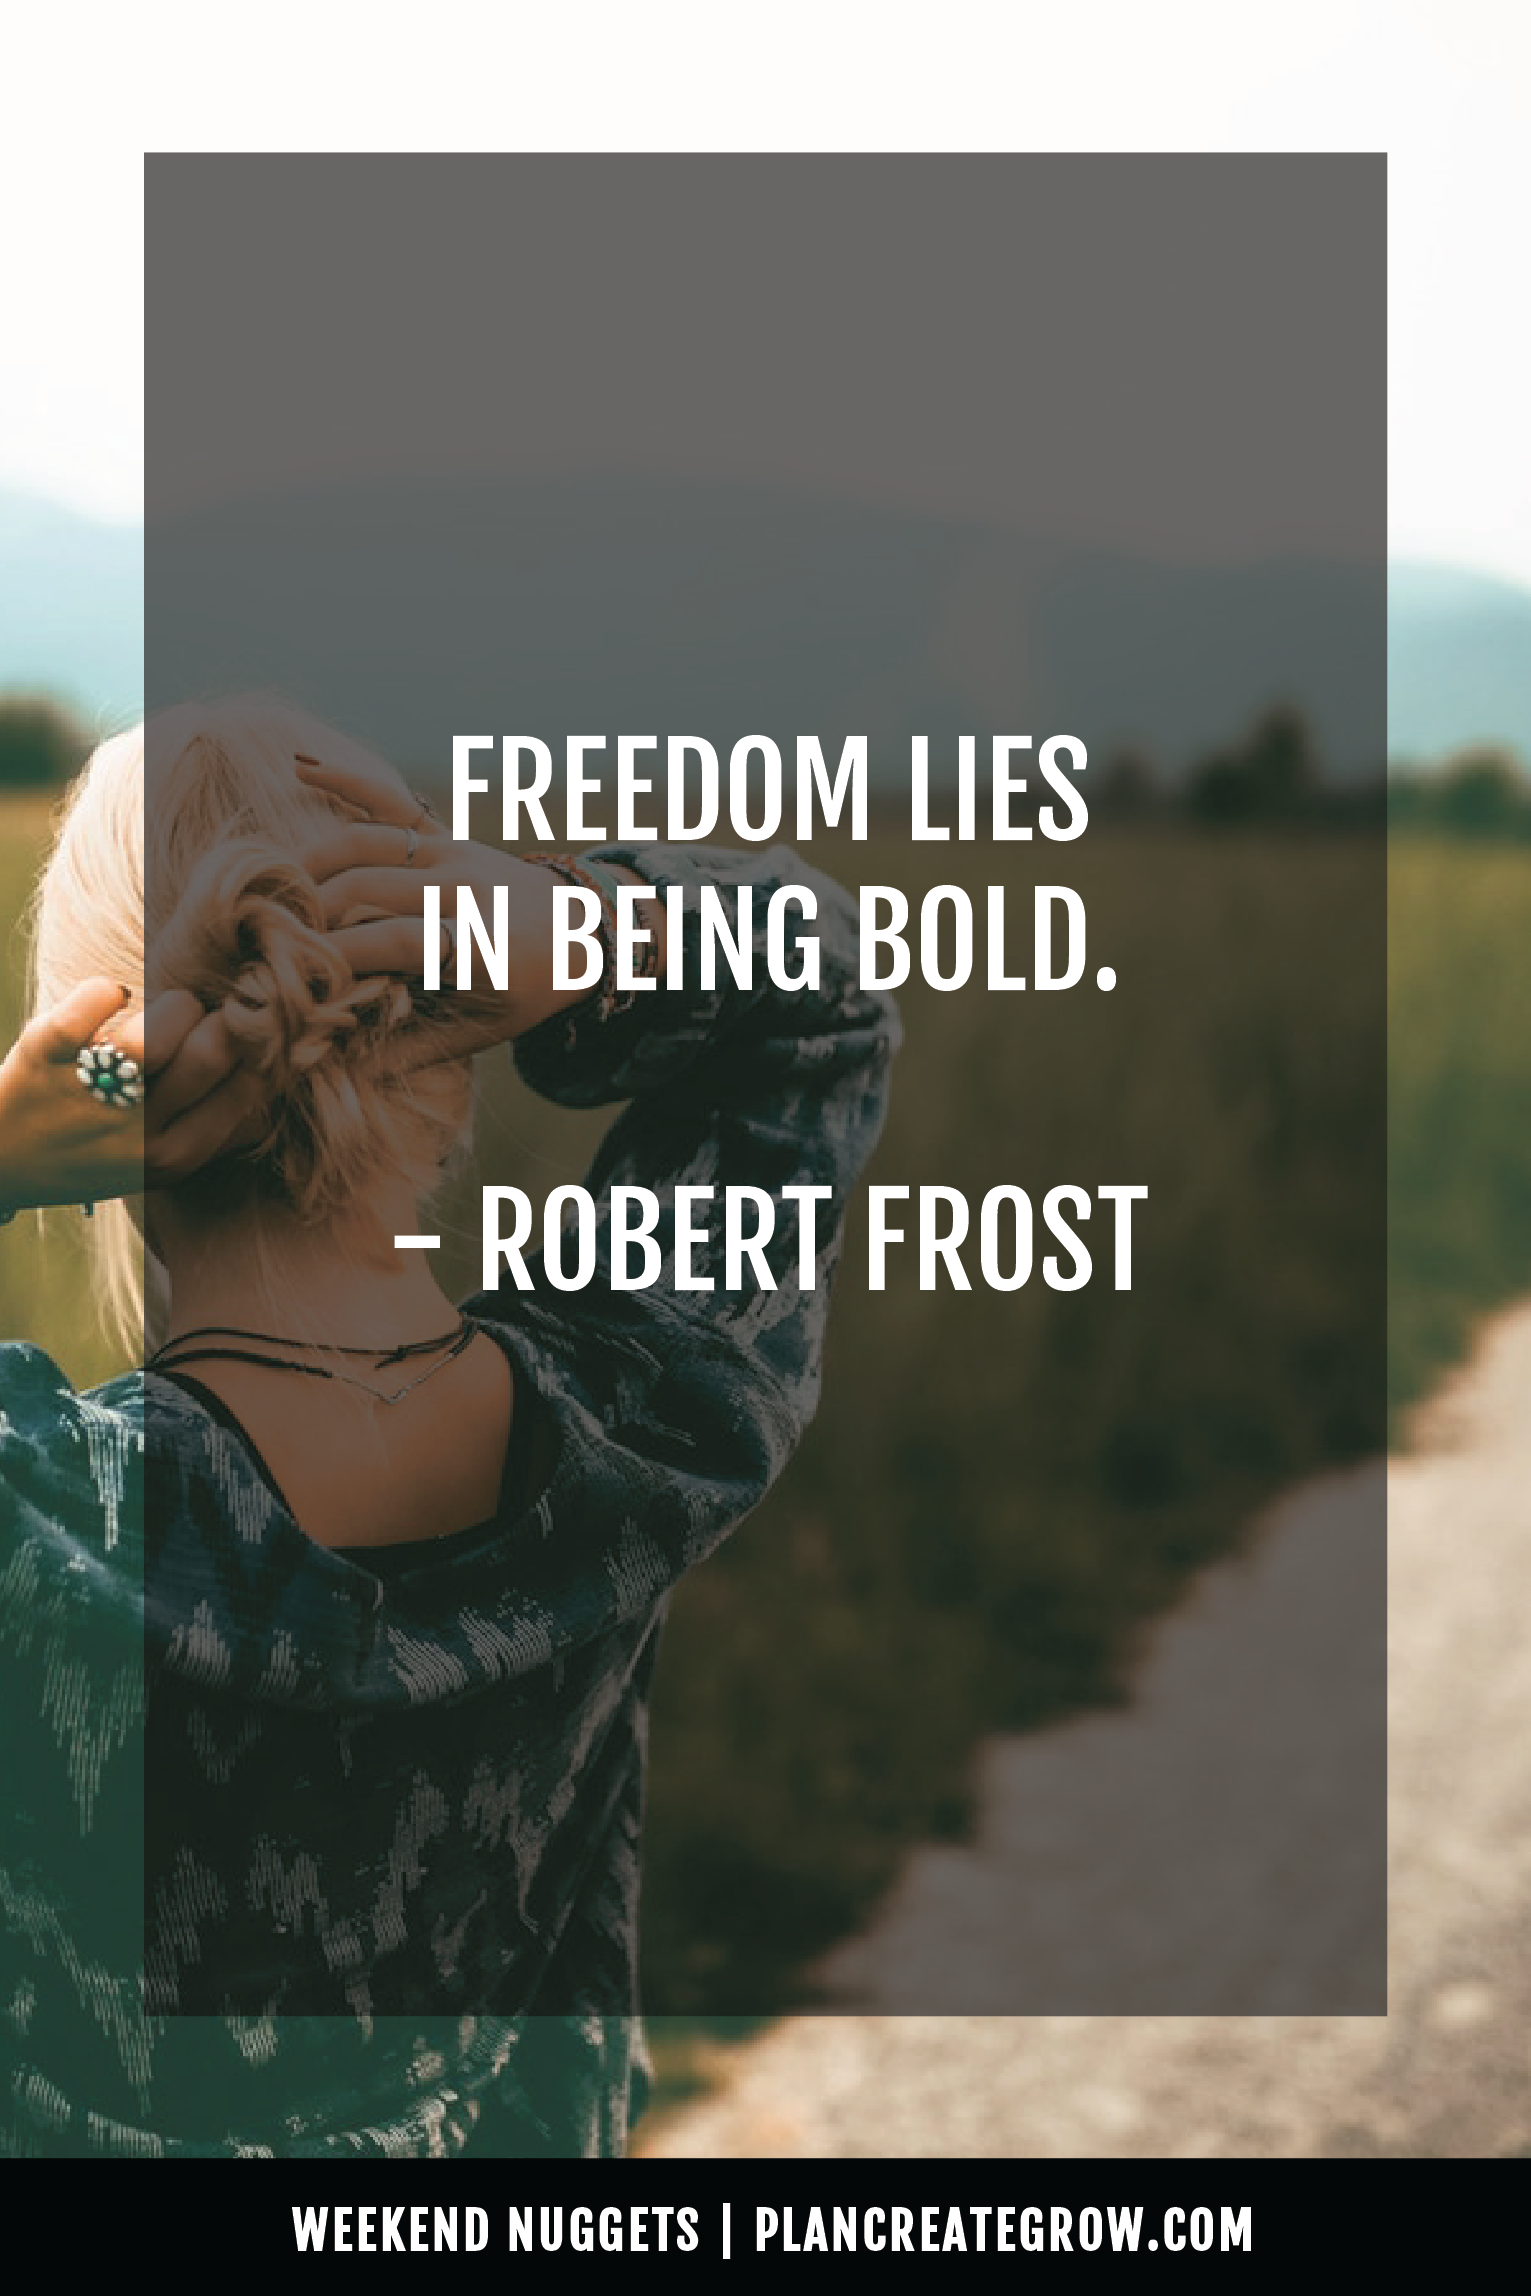 """""""Freedom lies in being bold."""" - Robert Frost  This image forms part of a series called Weekend Nuggets - a collection of quotes and ideas curated to delight and inspire - shared each weekend. For more, visit plancreategrow.com/weekend-nuggets."""